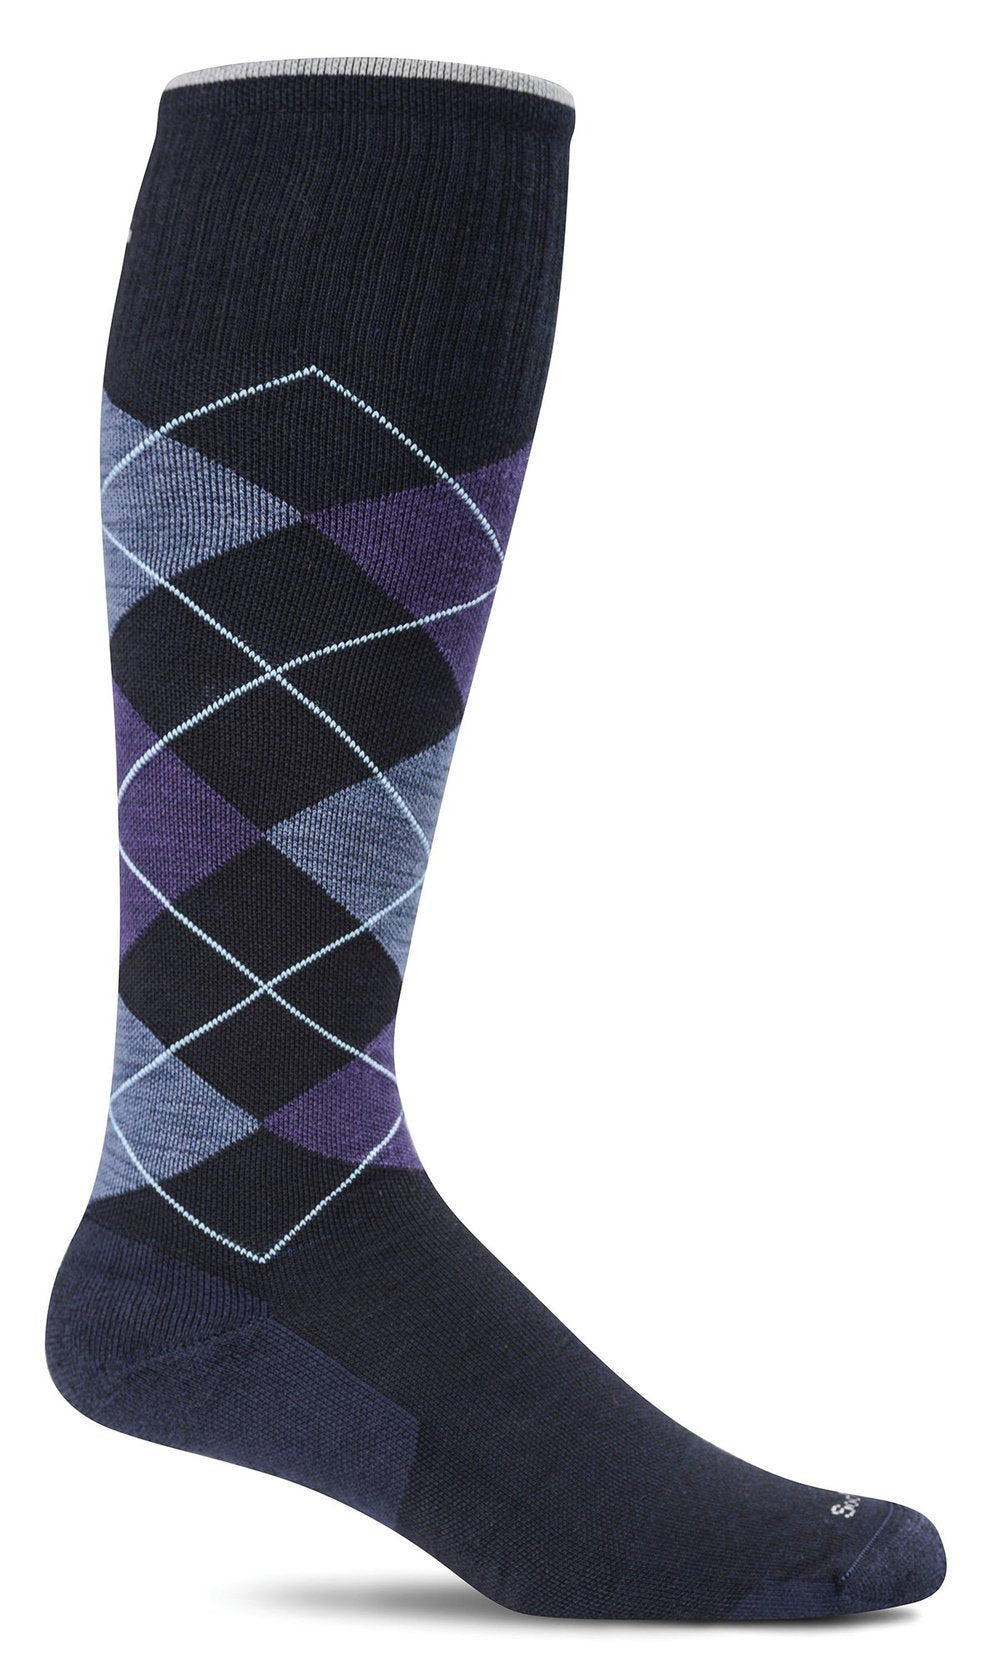 Men's Argyle Graduated Compression Knee High Socks